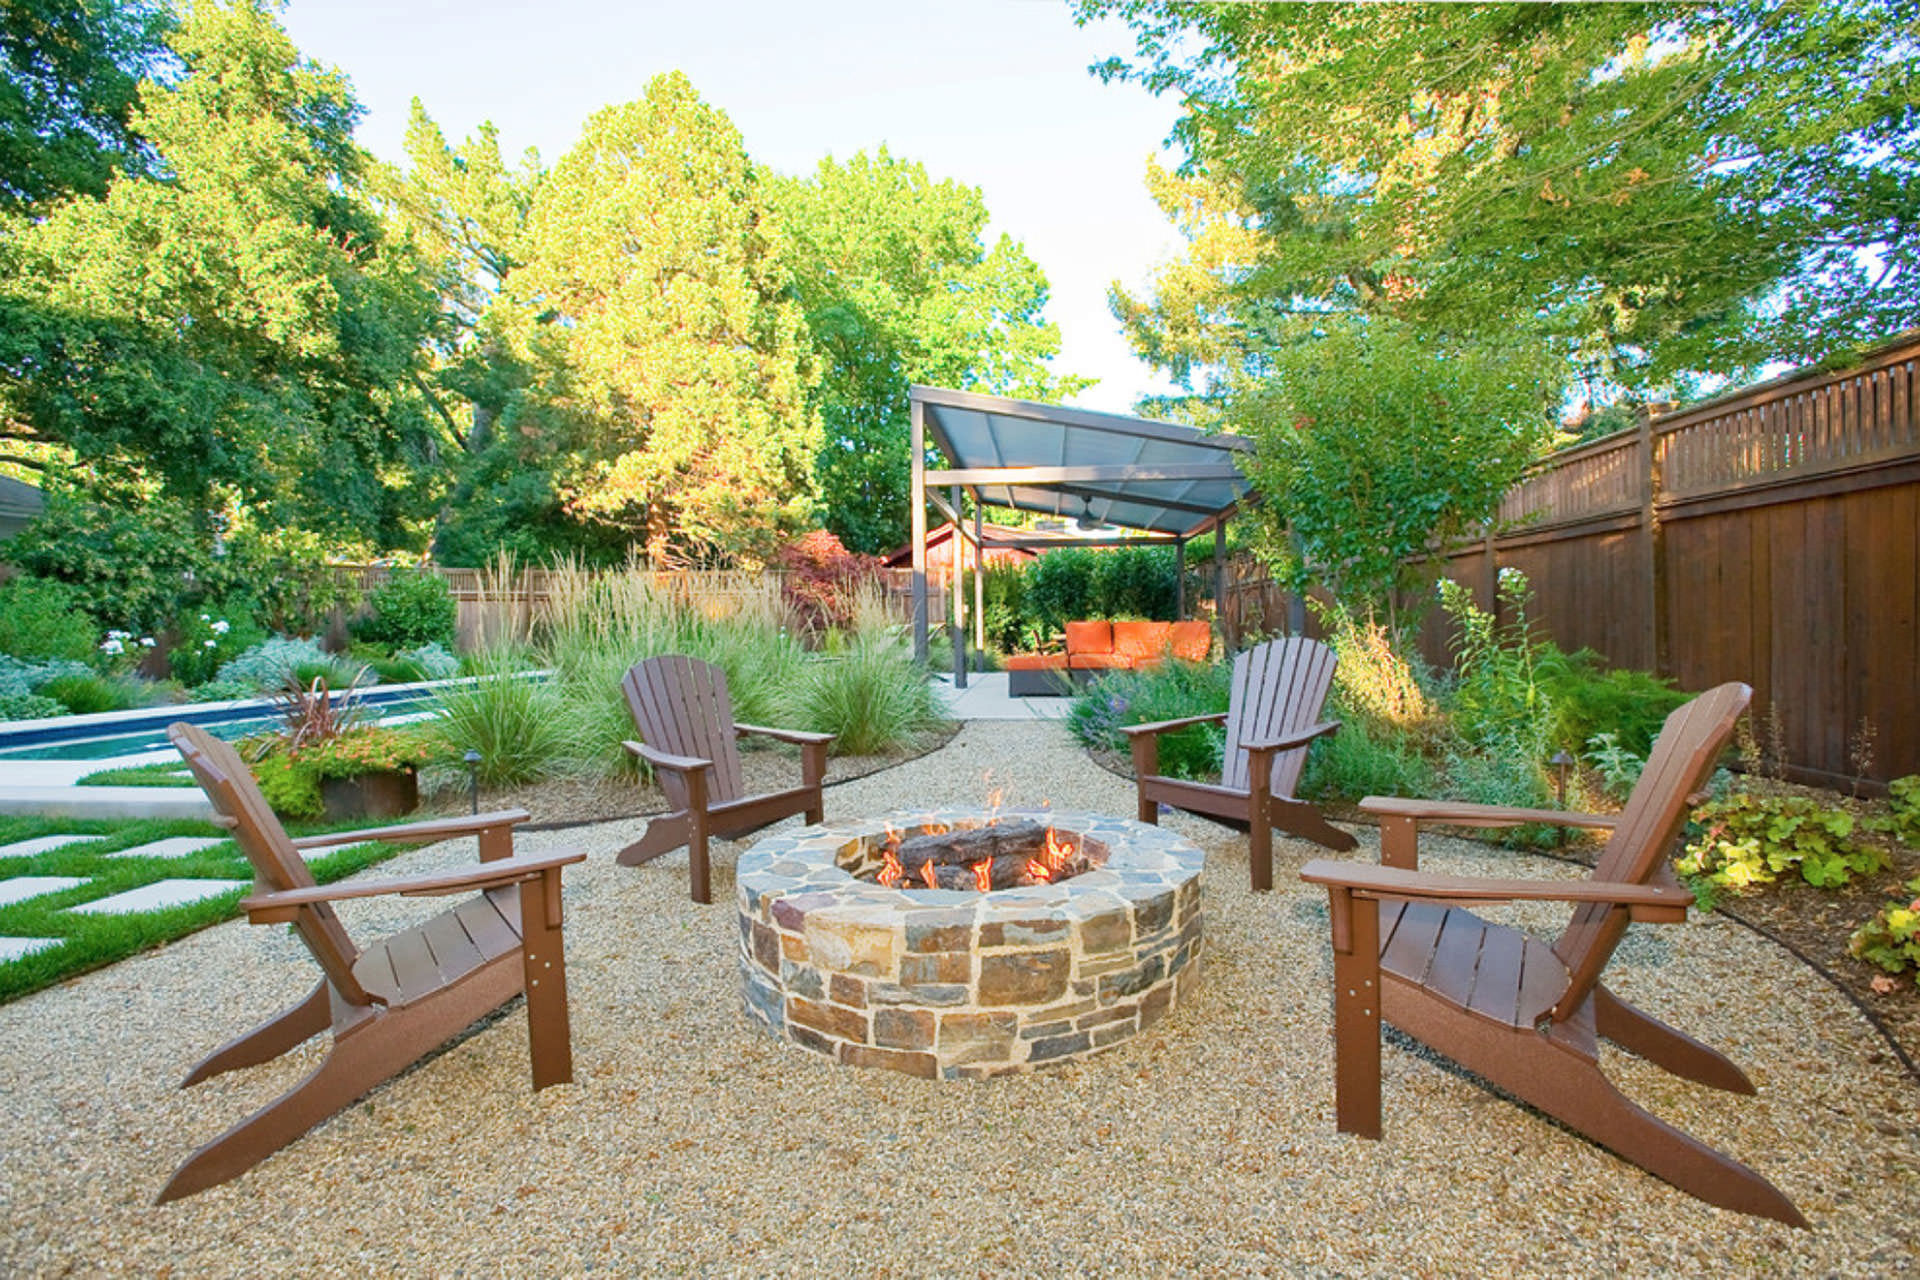 Outdoor Patio Ideas on Pinterest | Pea Gravel Patio, Pea ... on Pea Gravel Yard Ideas id=22386